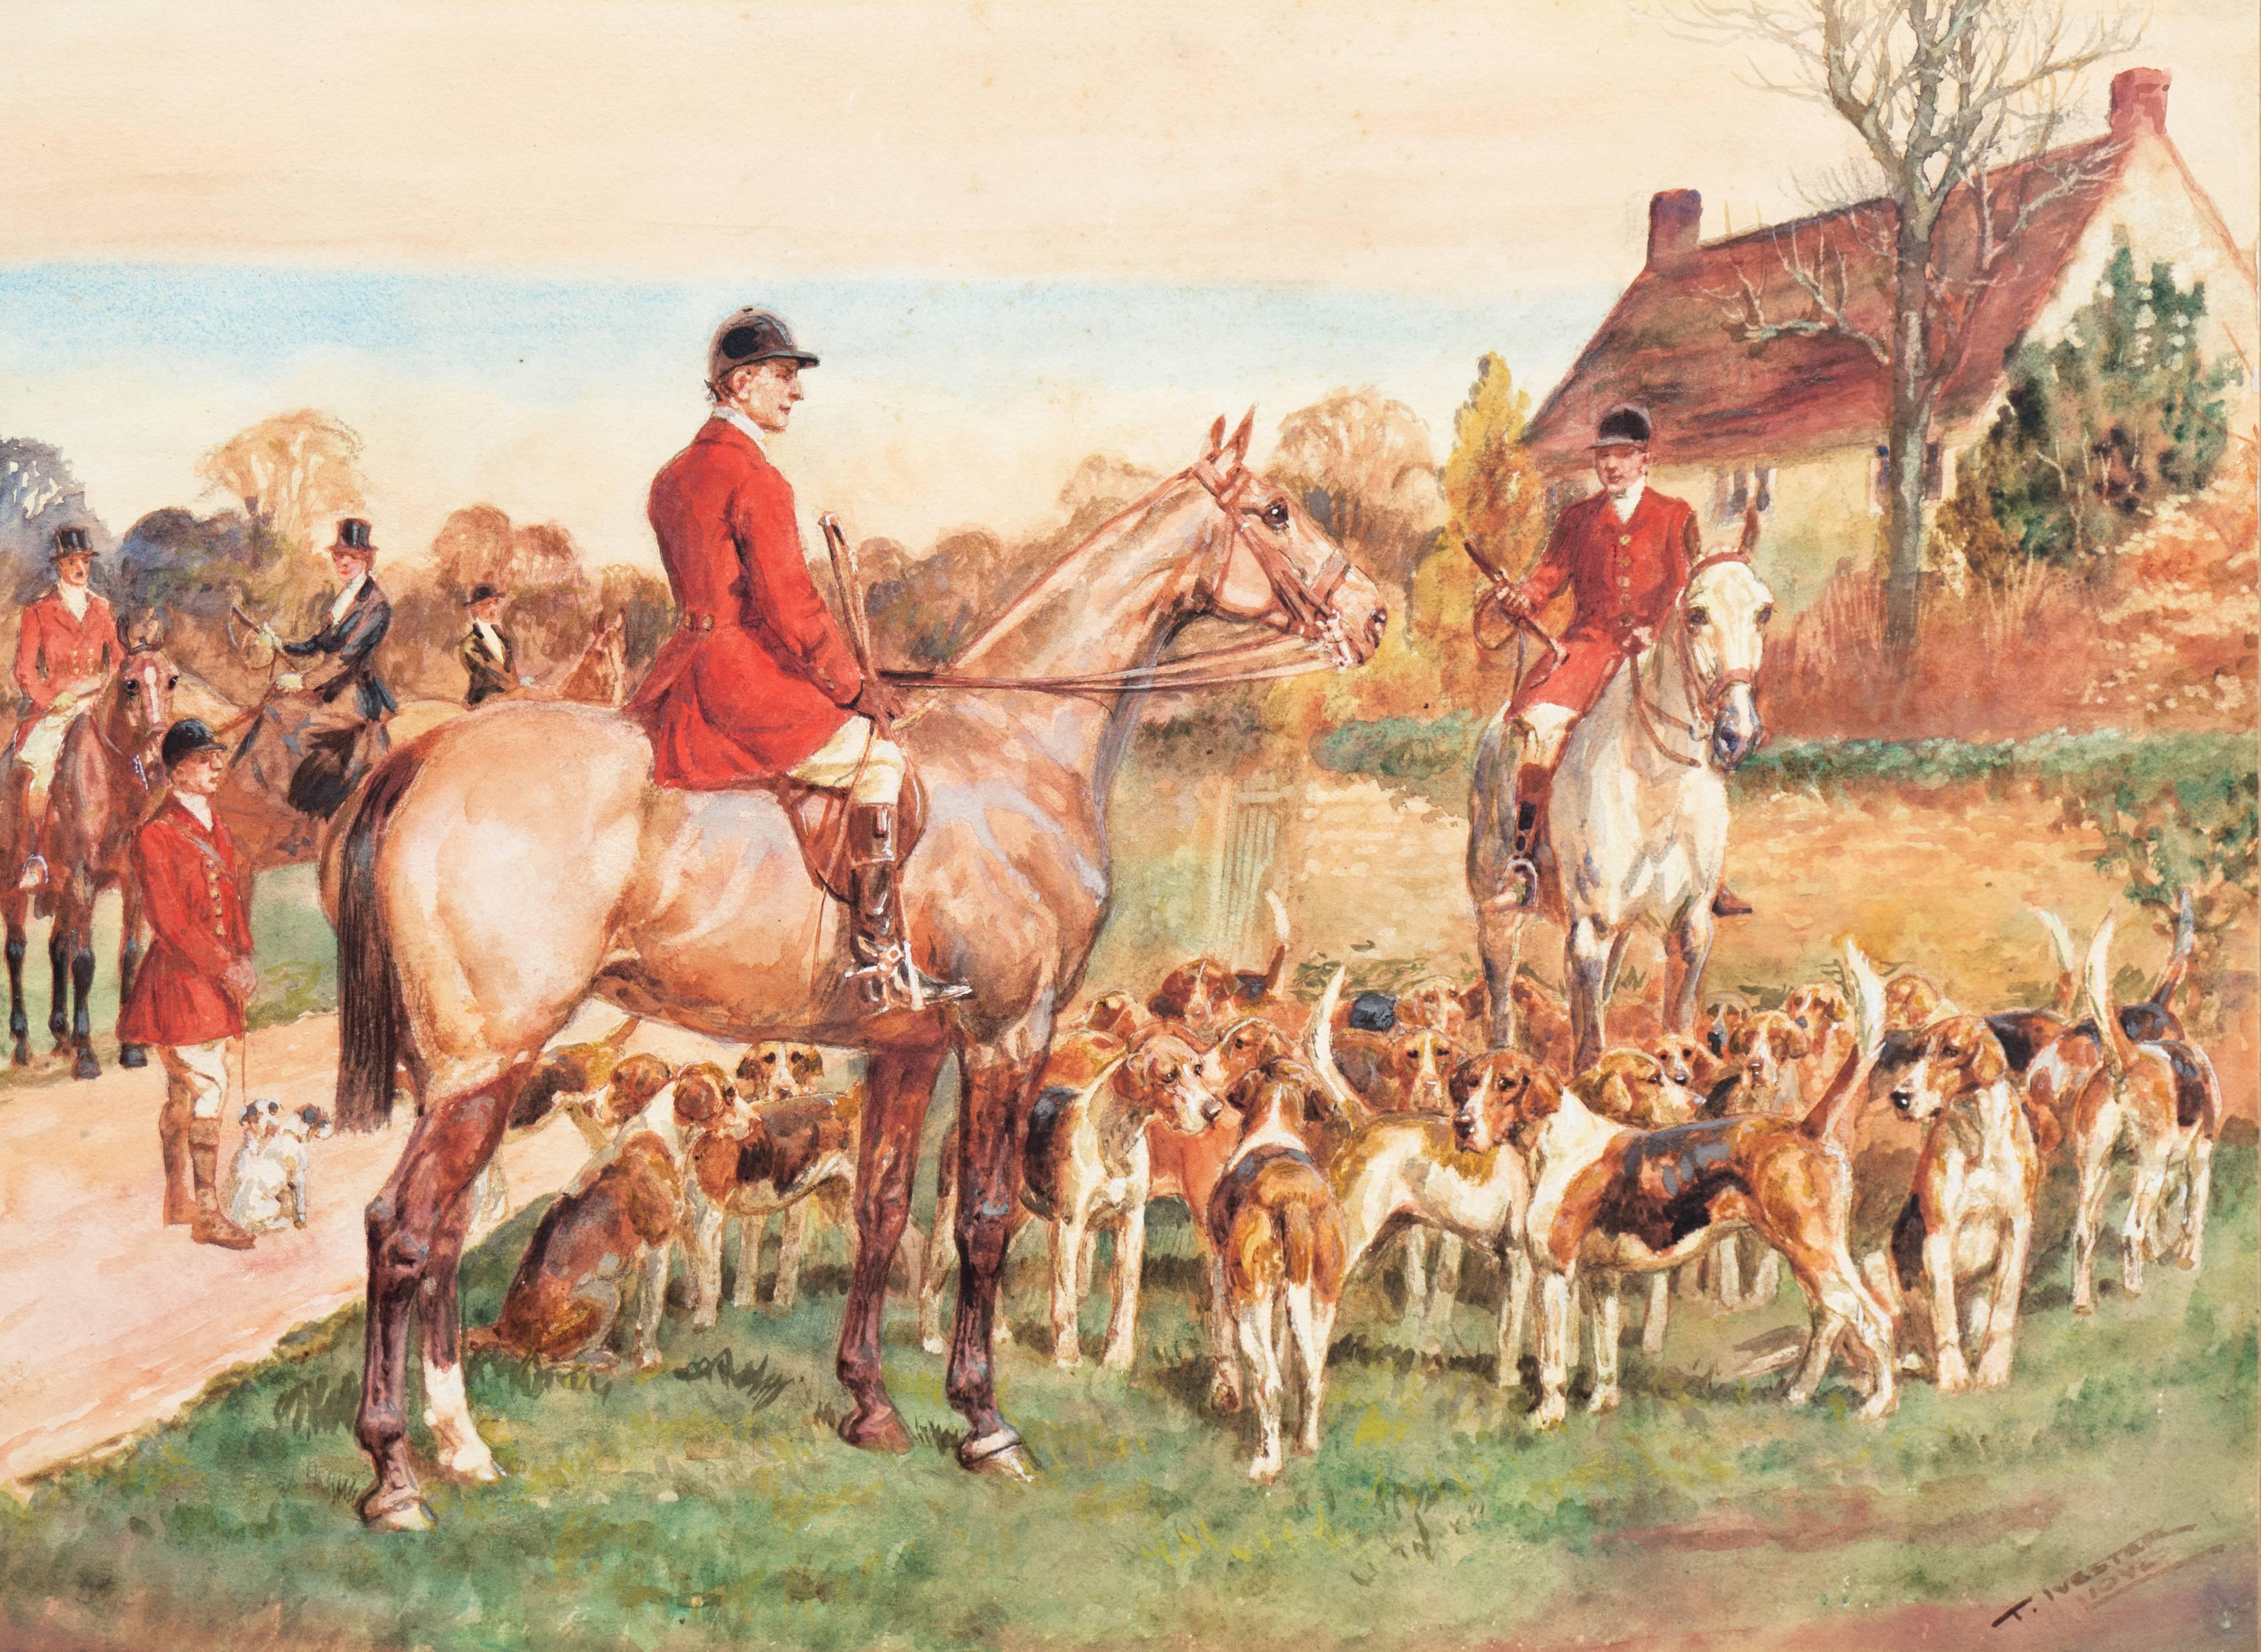 'The Meet', English Edwardian Fox Hunting, Equestrian Watercolor with Horses